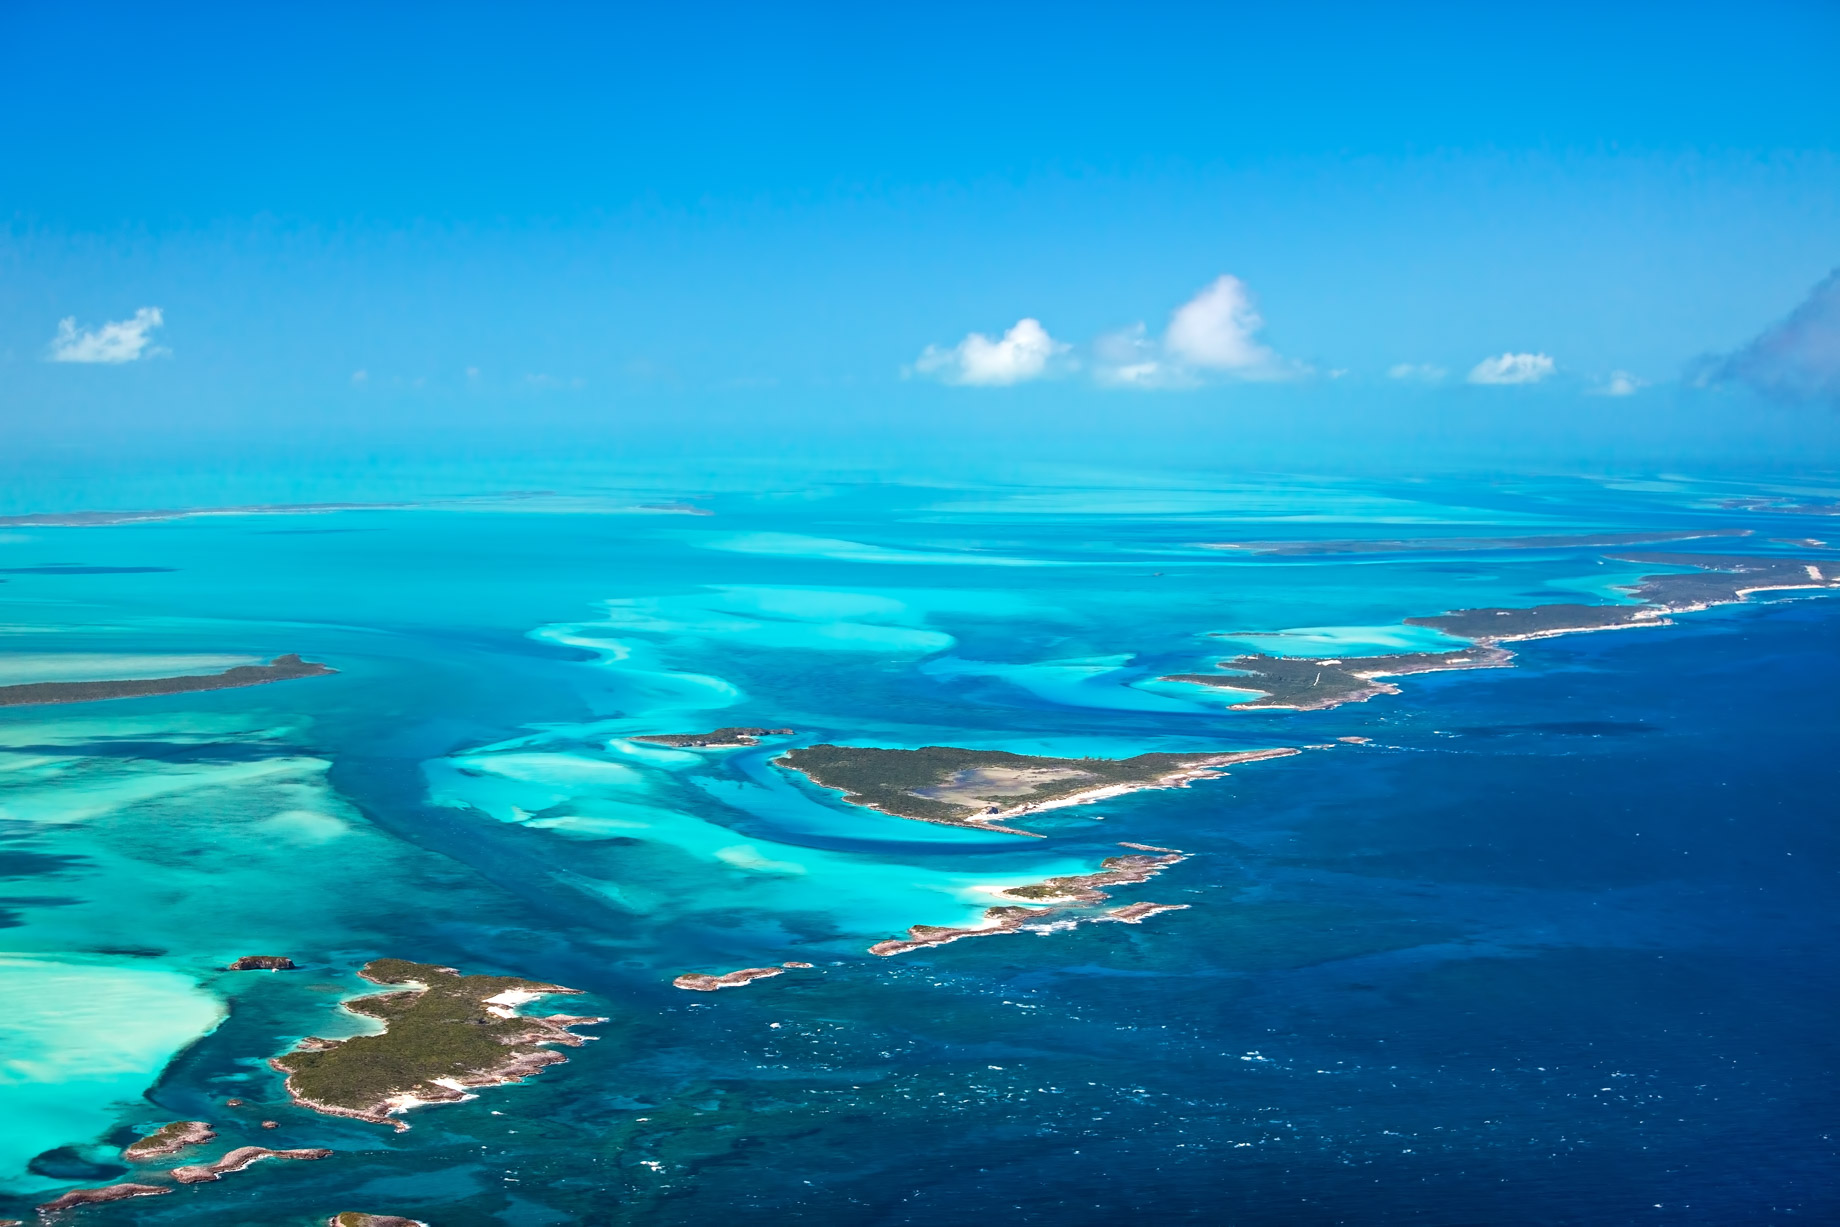 The Islands of the Bahamas - Aerial View